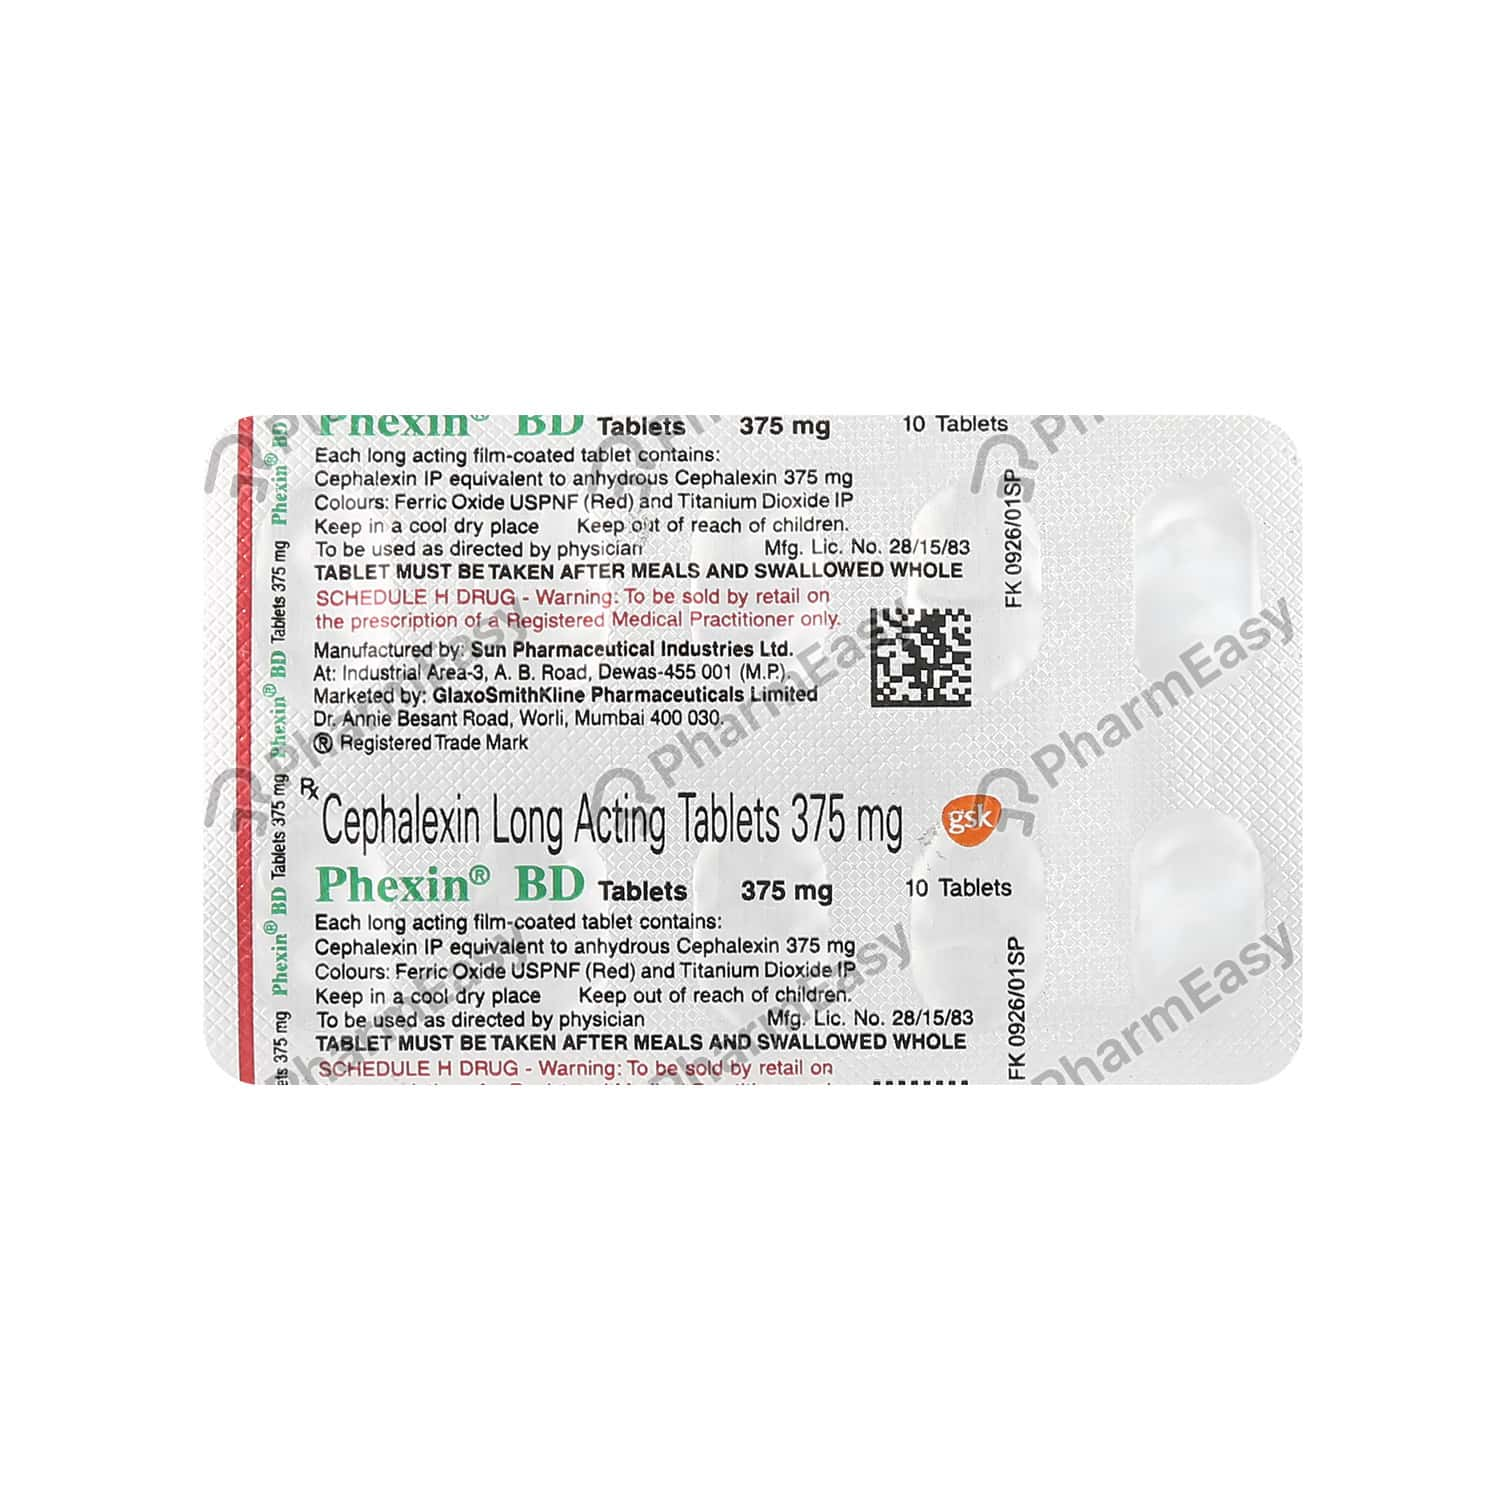 Phexin Bd 375mg Tablet